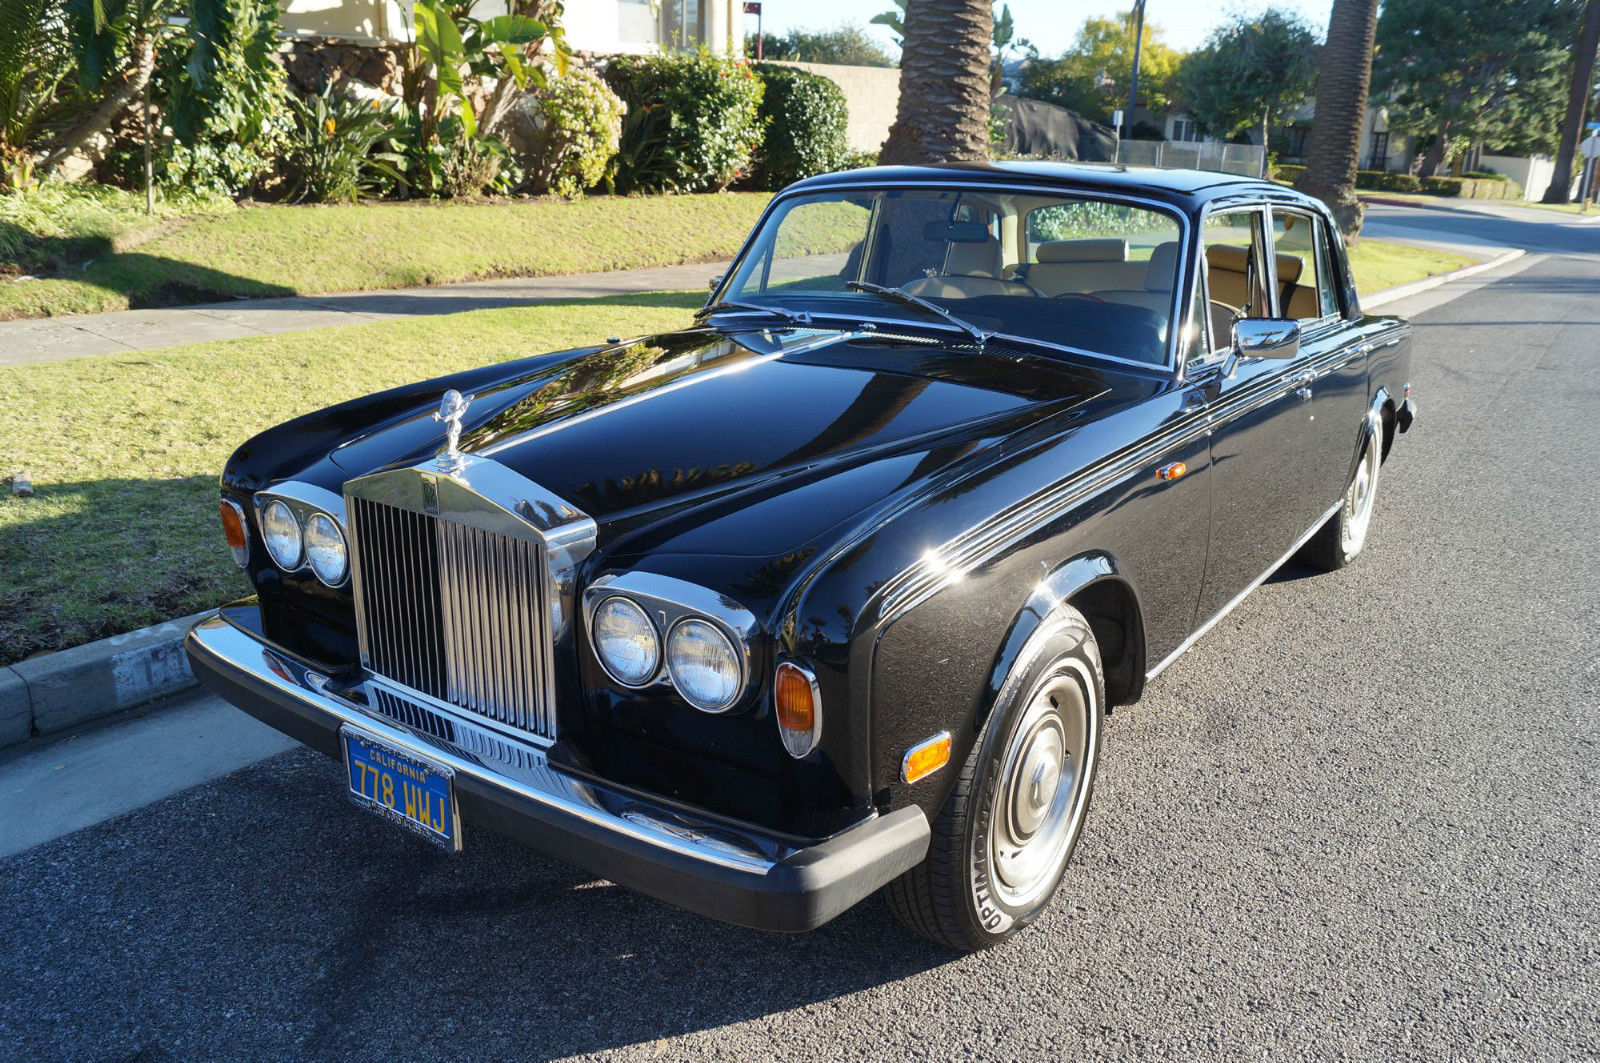 1979 rolls royce silver shadow ii for sale. Black Bedroom Furniture Sets. Home Design Ideas